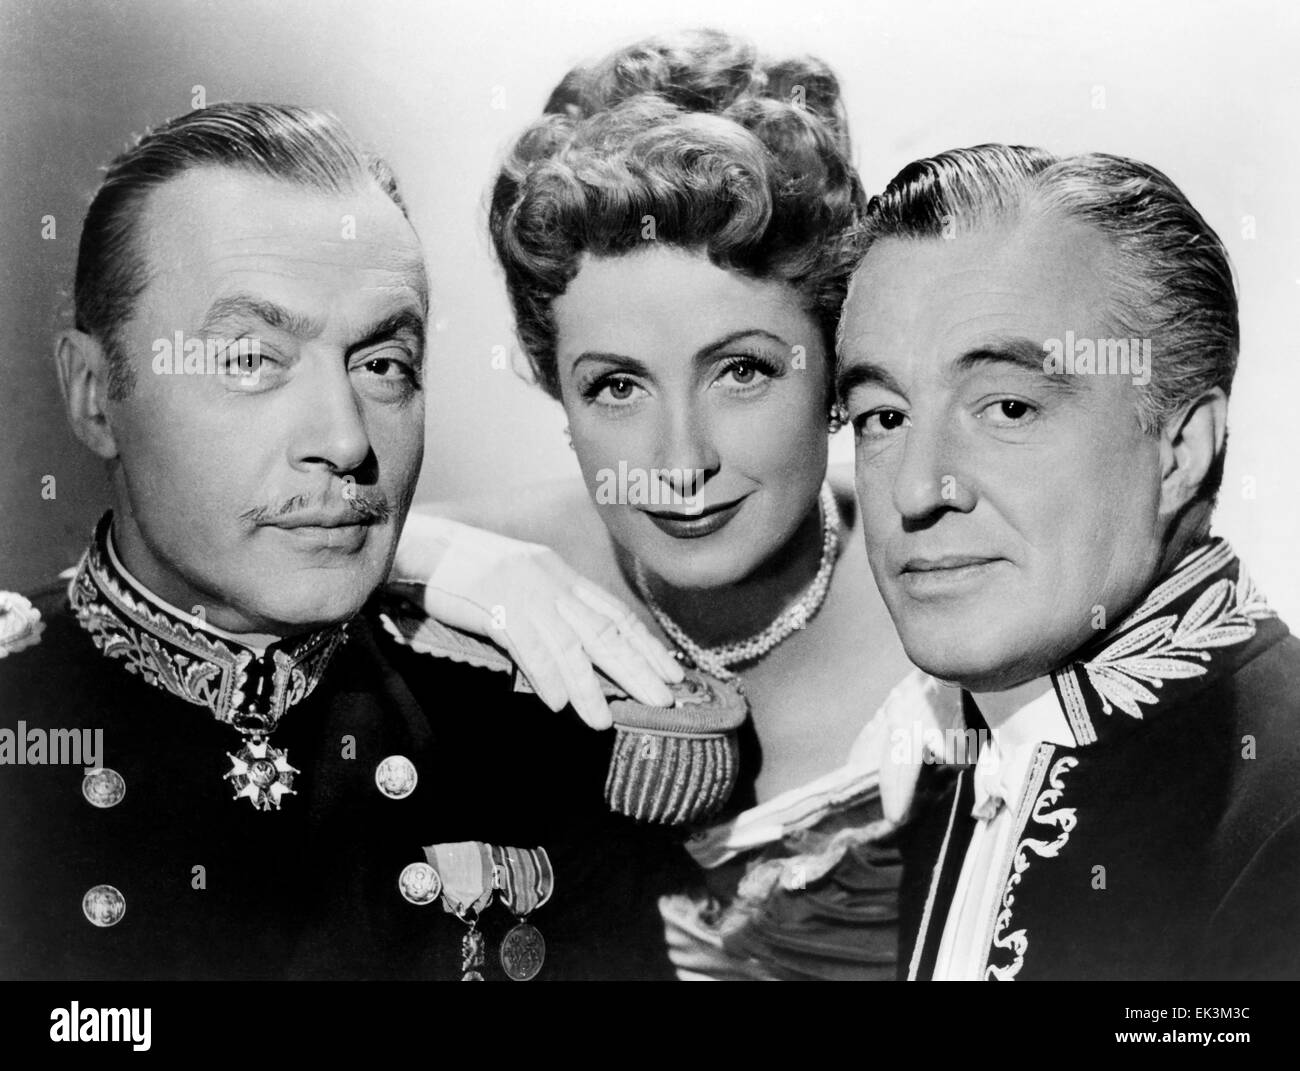 Charles Boyer, Danielle Darrieux, Vittorio De Sica, on-set of the Film 'The Earrings of Madame De…' 1953 - Stock Image